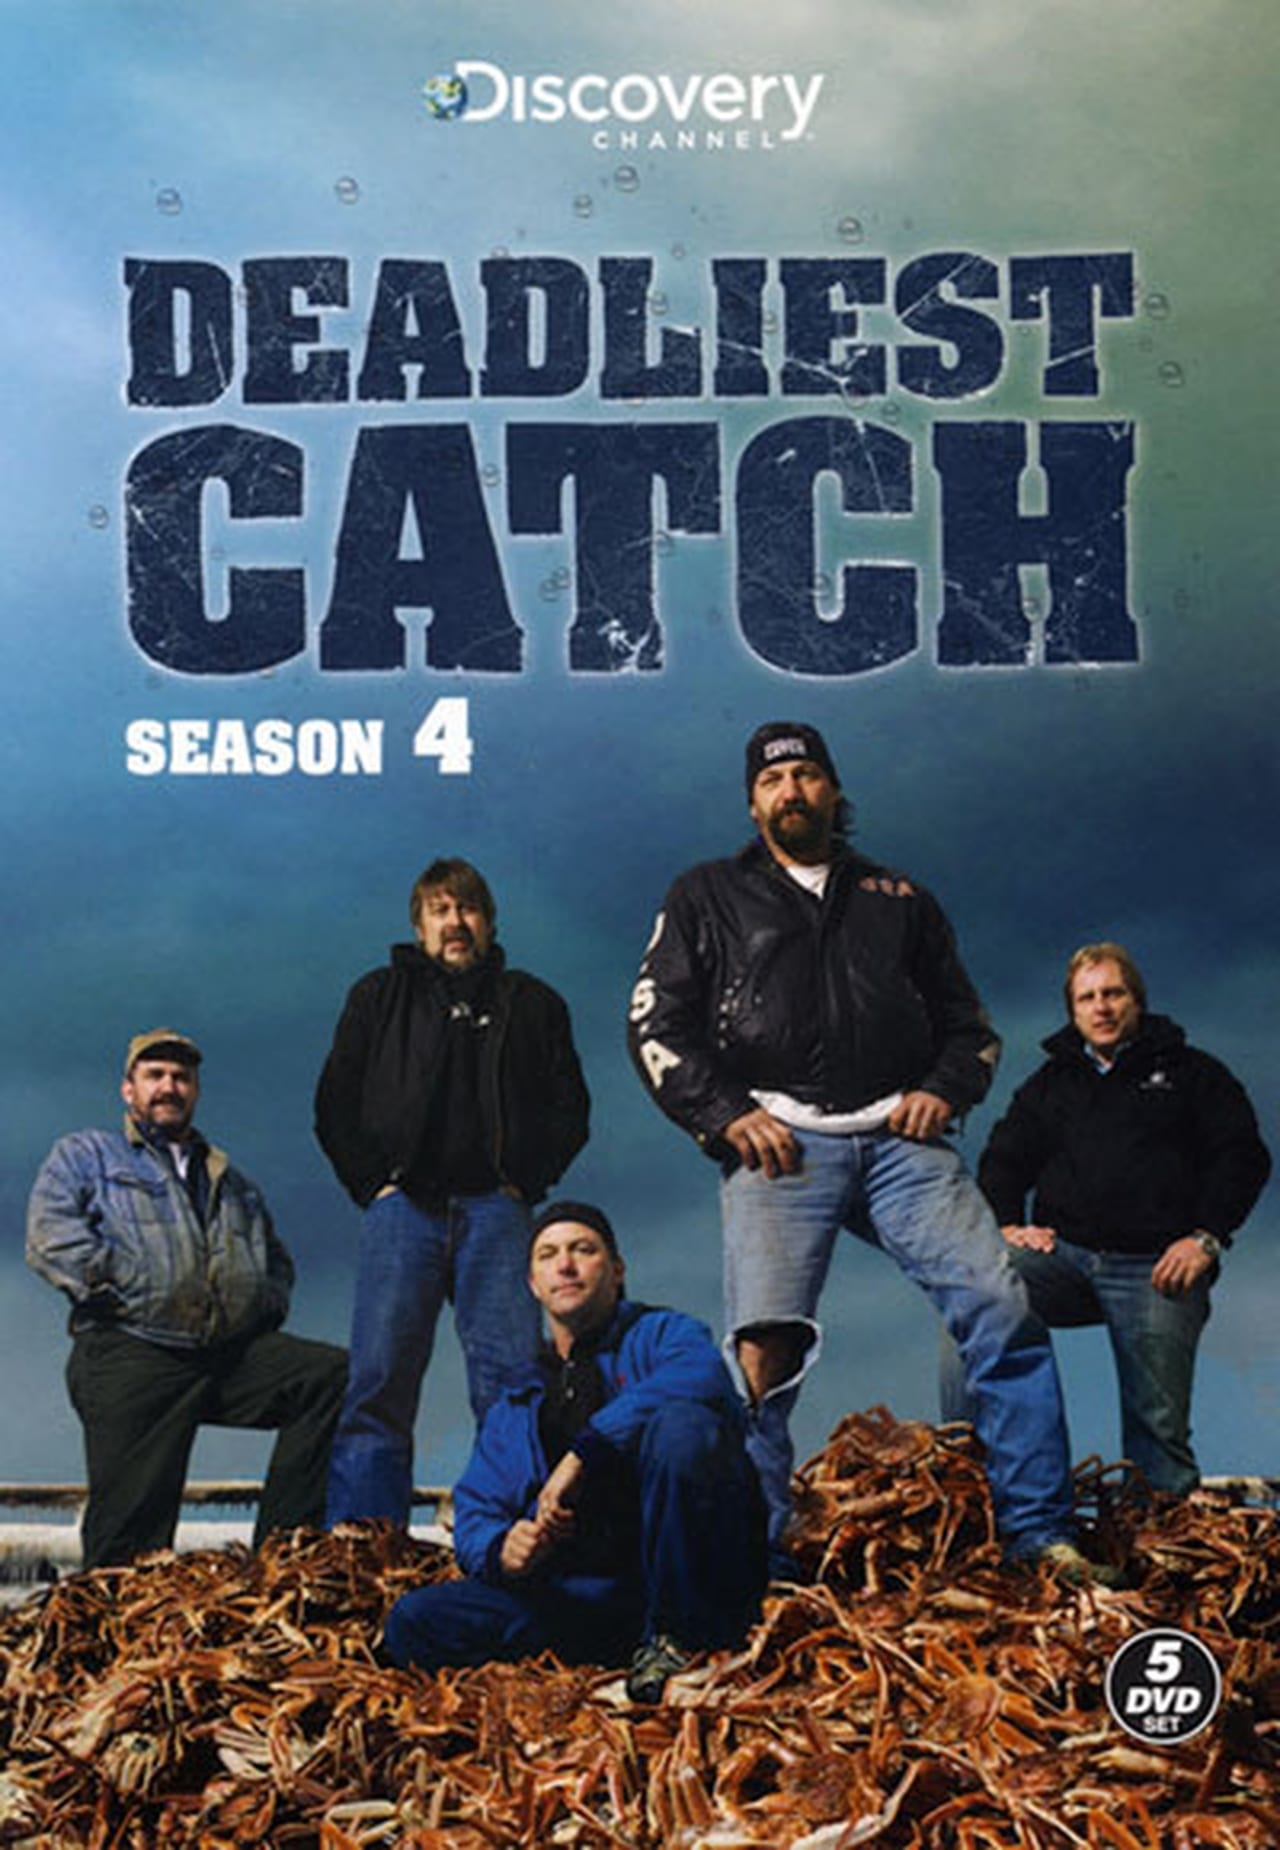 Watch Deadliest Catch Season 4 Online